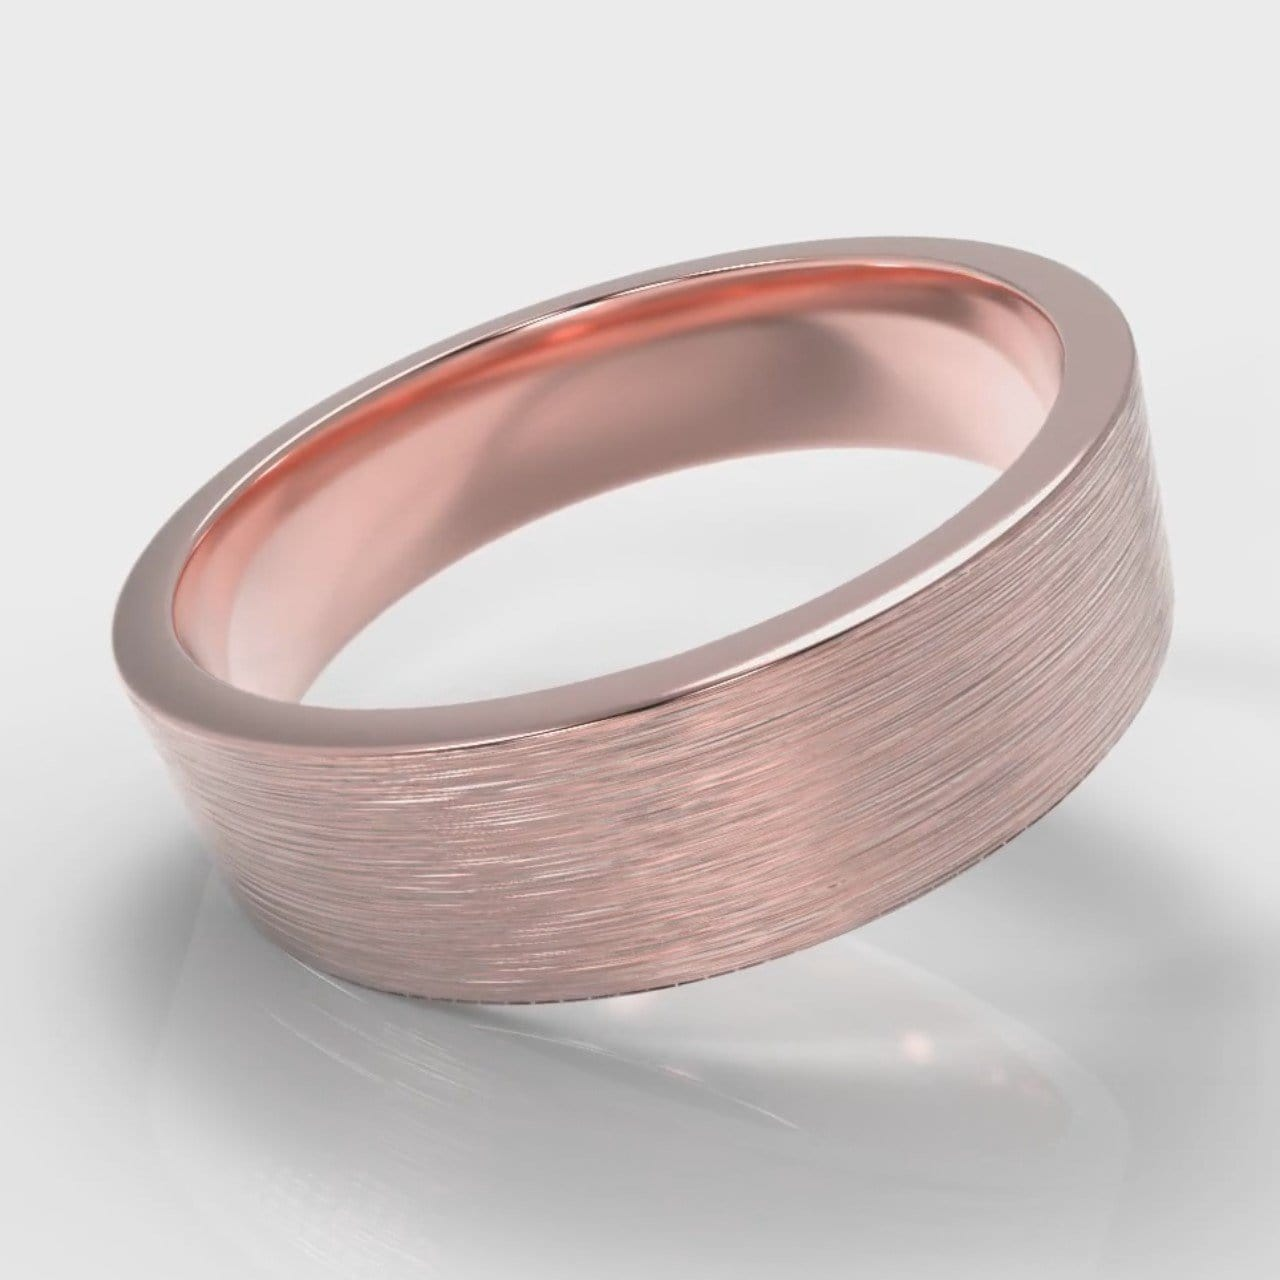 6mm Flat Top Comfort Fit Brushed Wedding Ring - Rose Gold